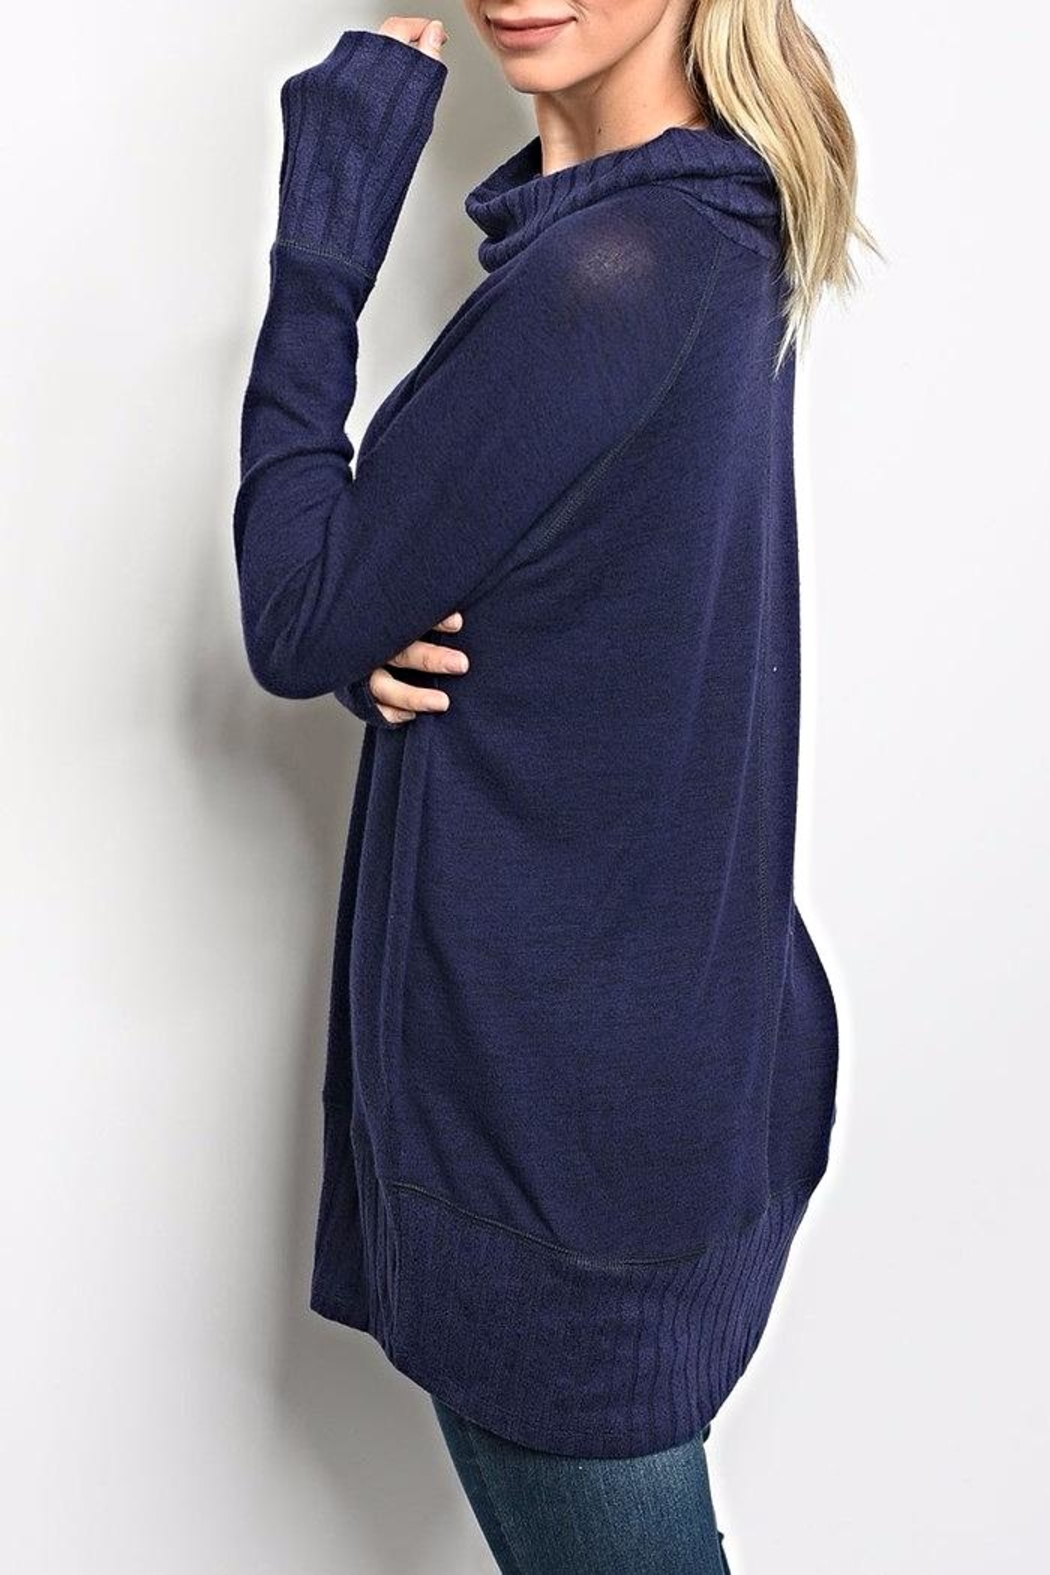 ee928e3f04b Be Cool Navy Turtleneck Sweater from Kansas by twill tradE — Shoptiques